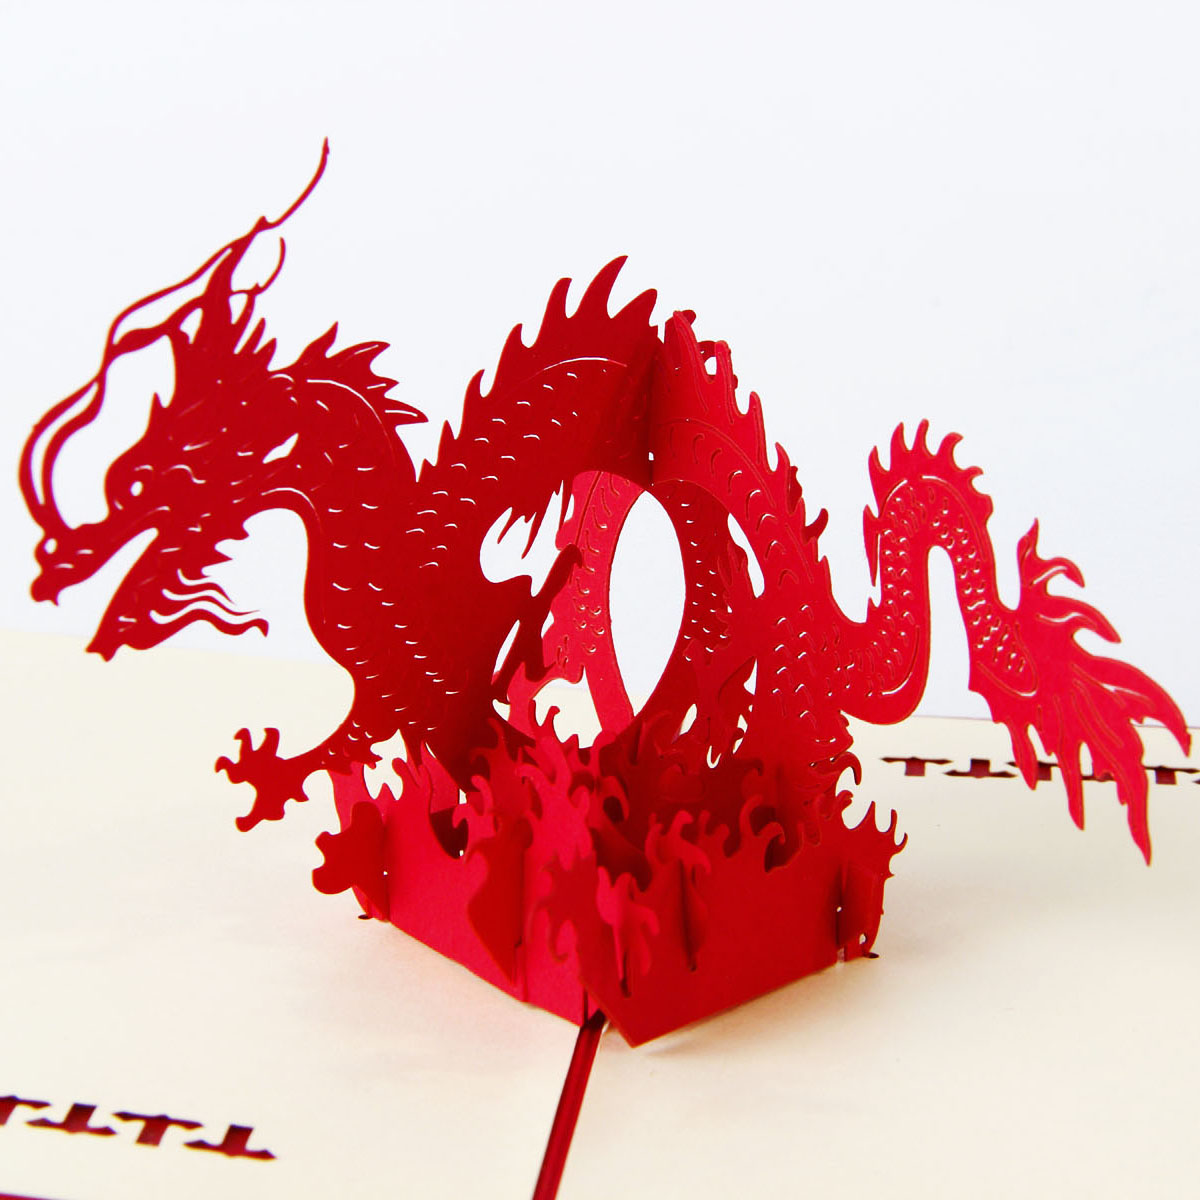 Animal Theme Dragon Handmade 3D Pop UP Greeting Cards For Birthday Greeting & Gift Greeting Cards Free Shipping 30pcs in one postcard take a walk on the go dubai arab emirates christmas postcards greeting birthday message cards 10 2x14 2cm